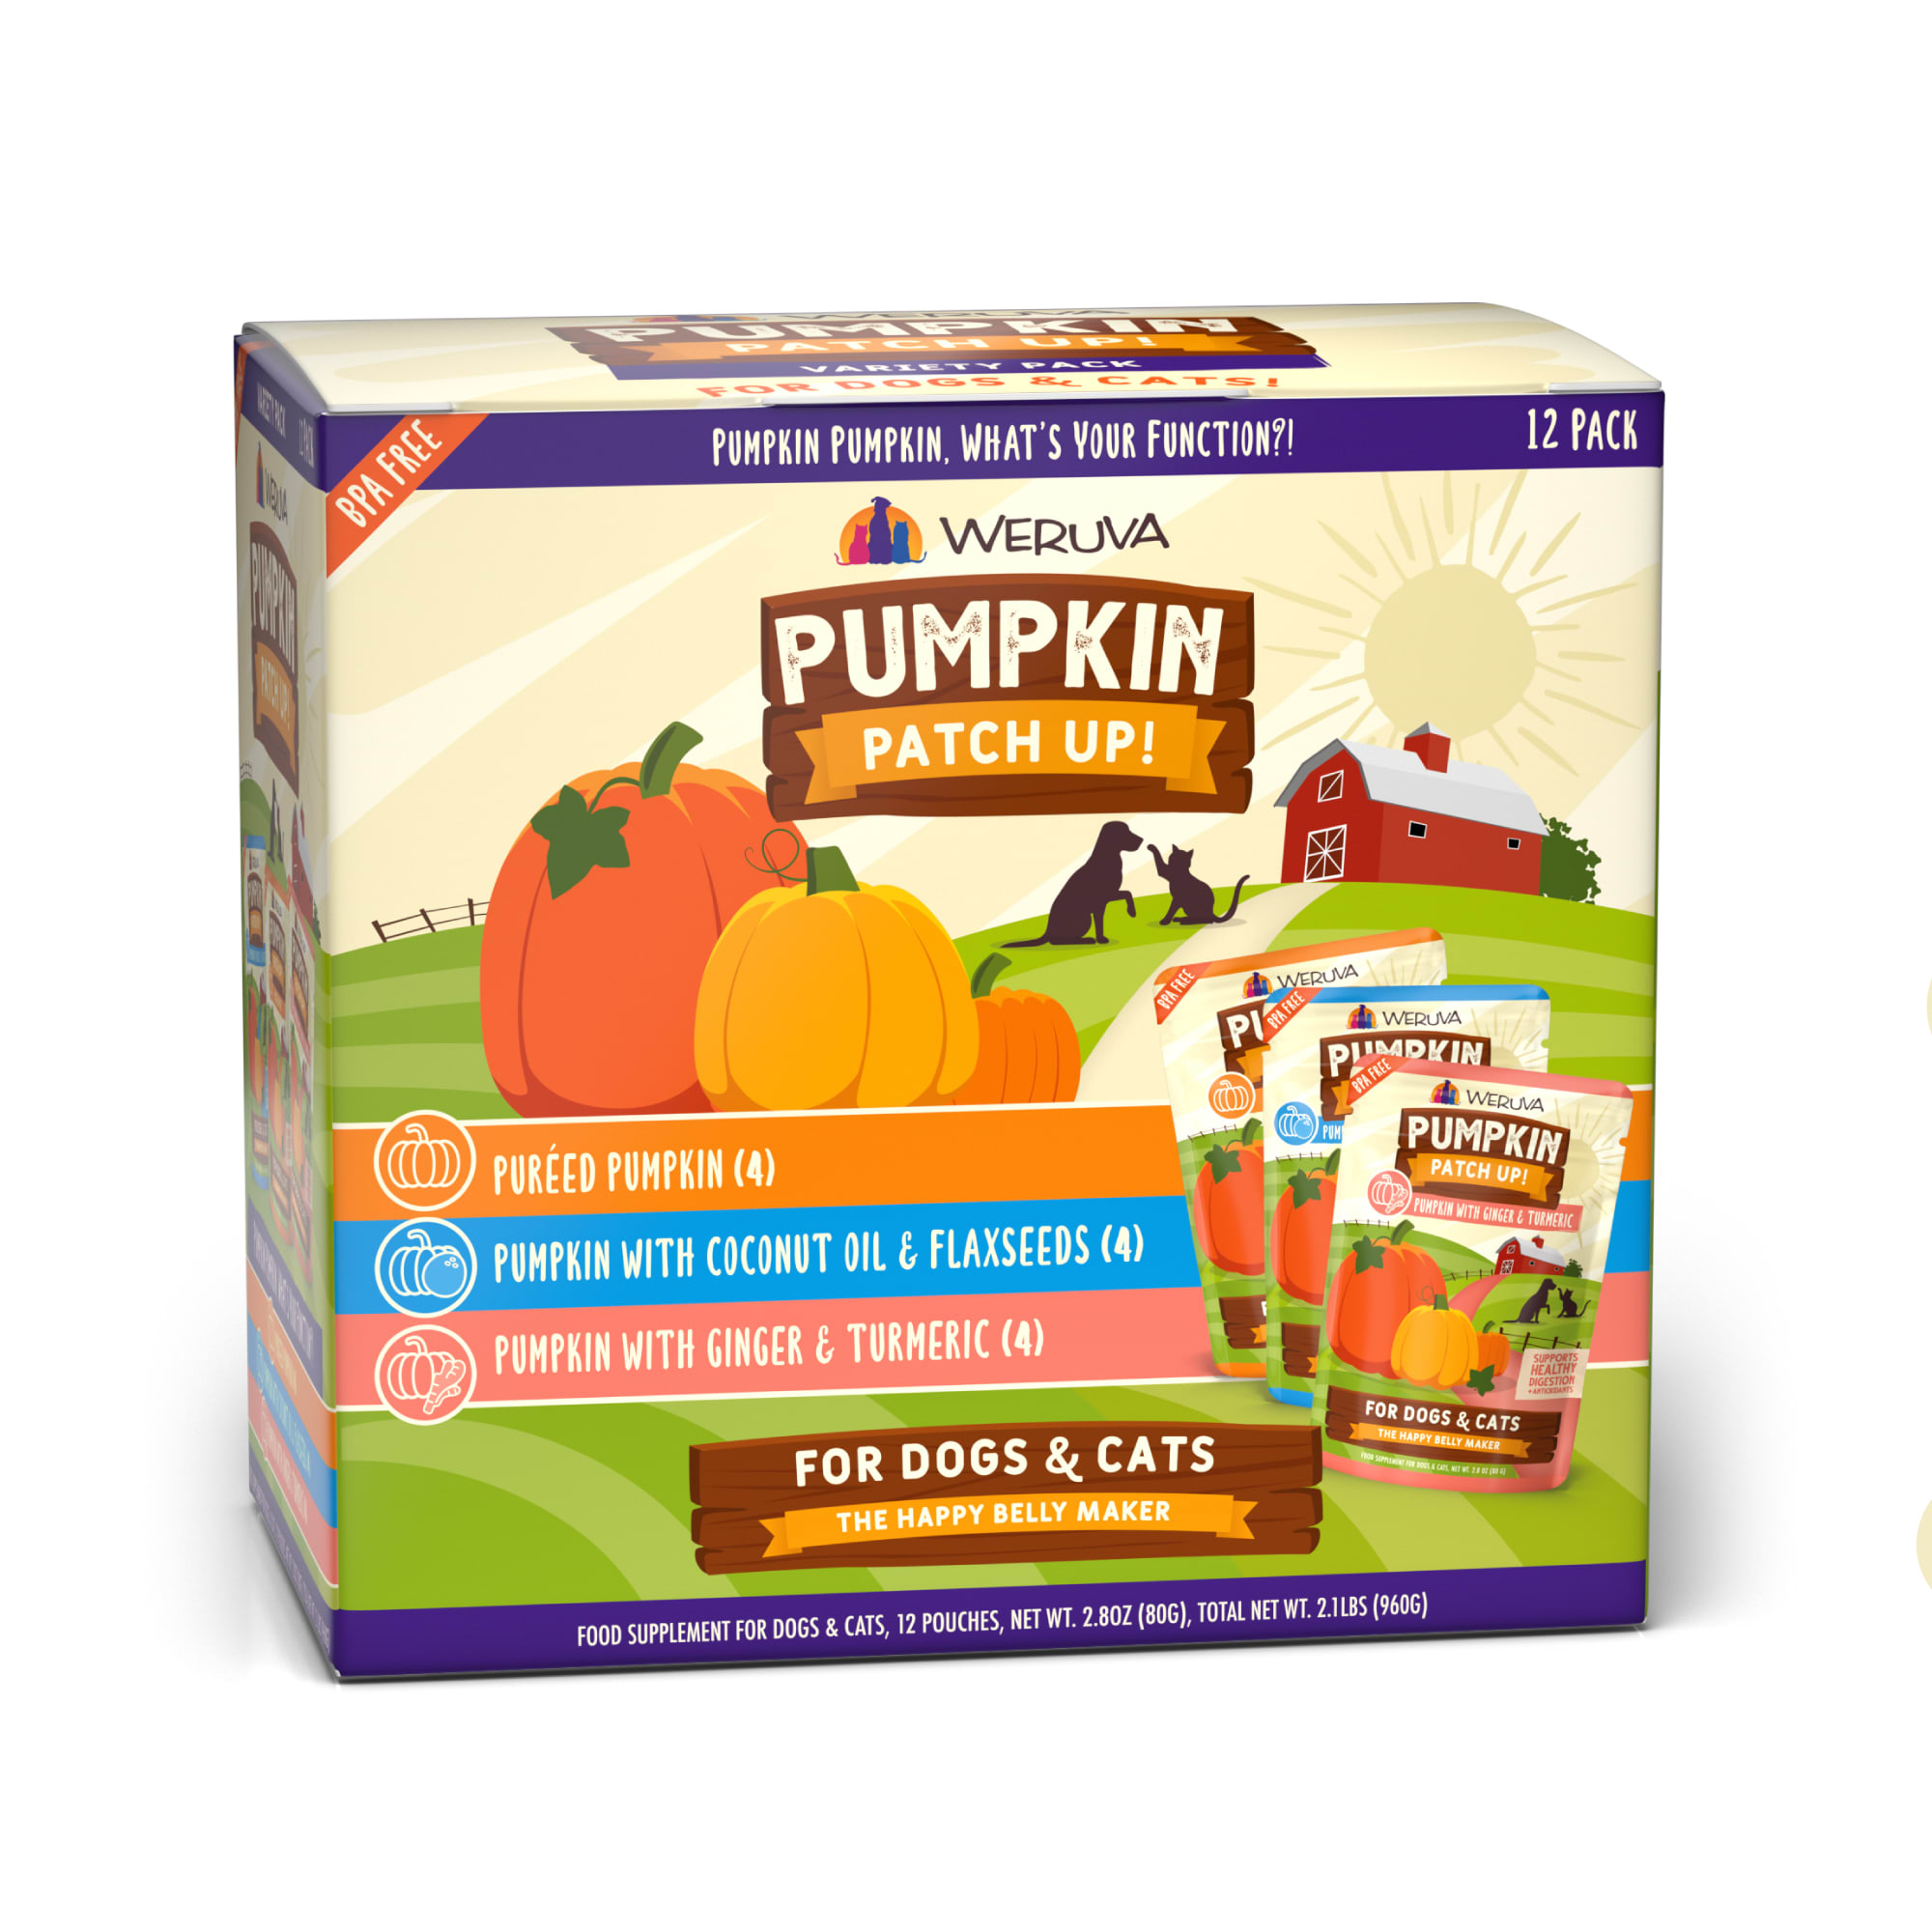 Weruva Pumpkin Patch Up! Pumpkin, Pumpkin What's Your Function?! Variety Pack Food Supplement for Dogs and Cats